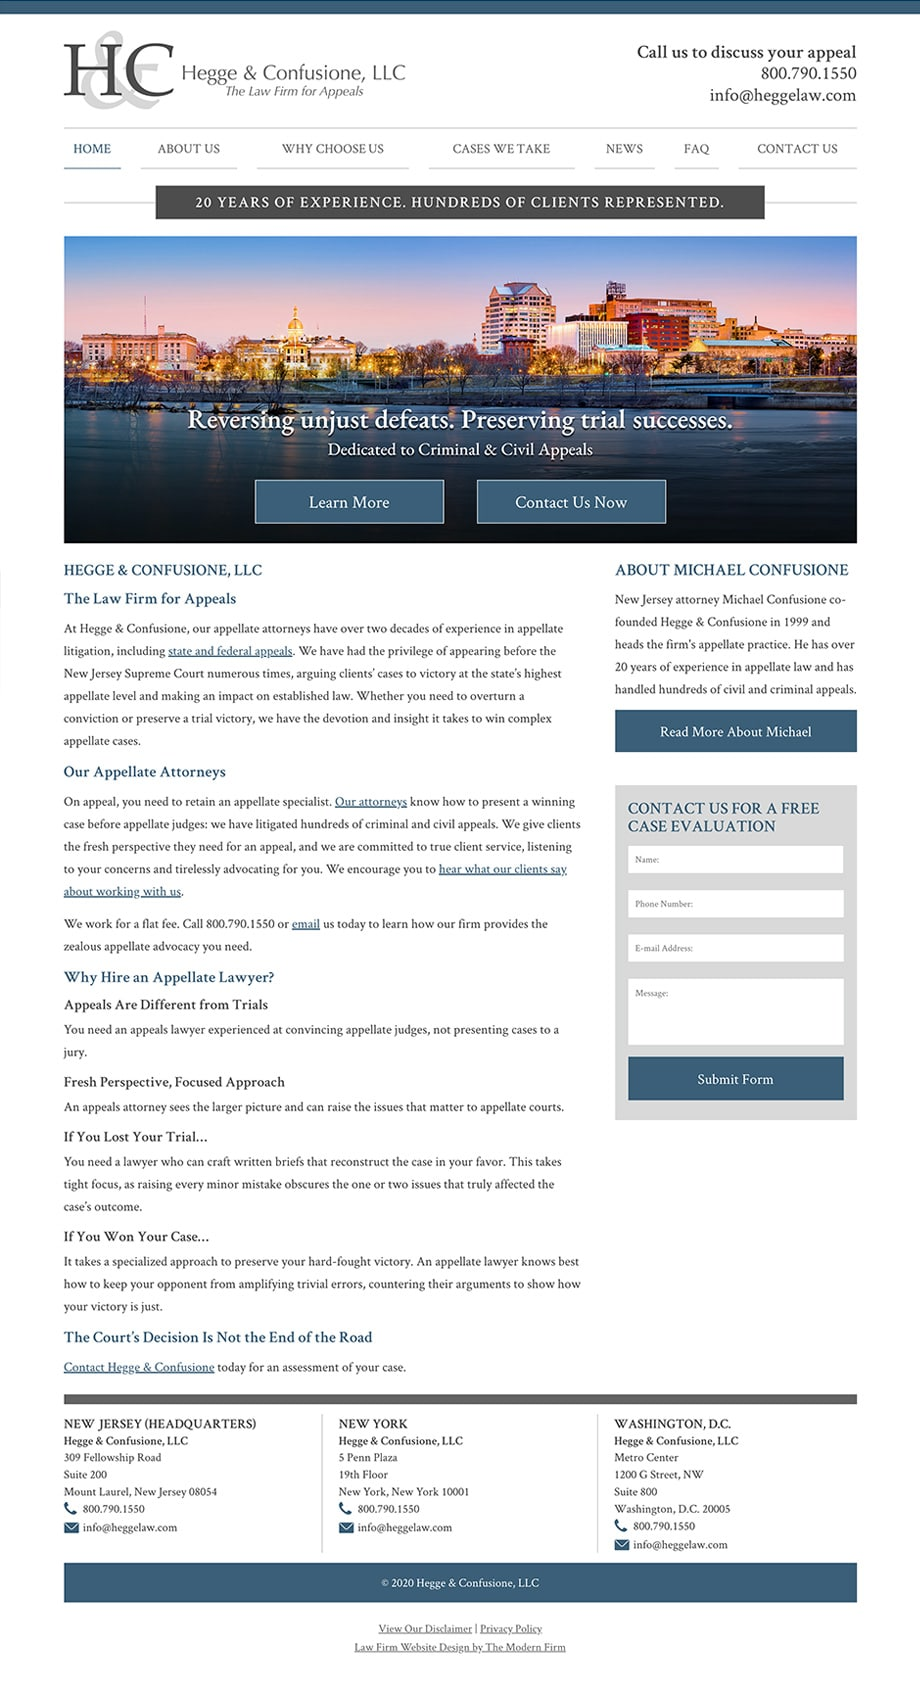 Law Firm Website Design for Hegge & Confusione, LLC